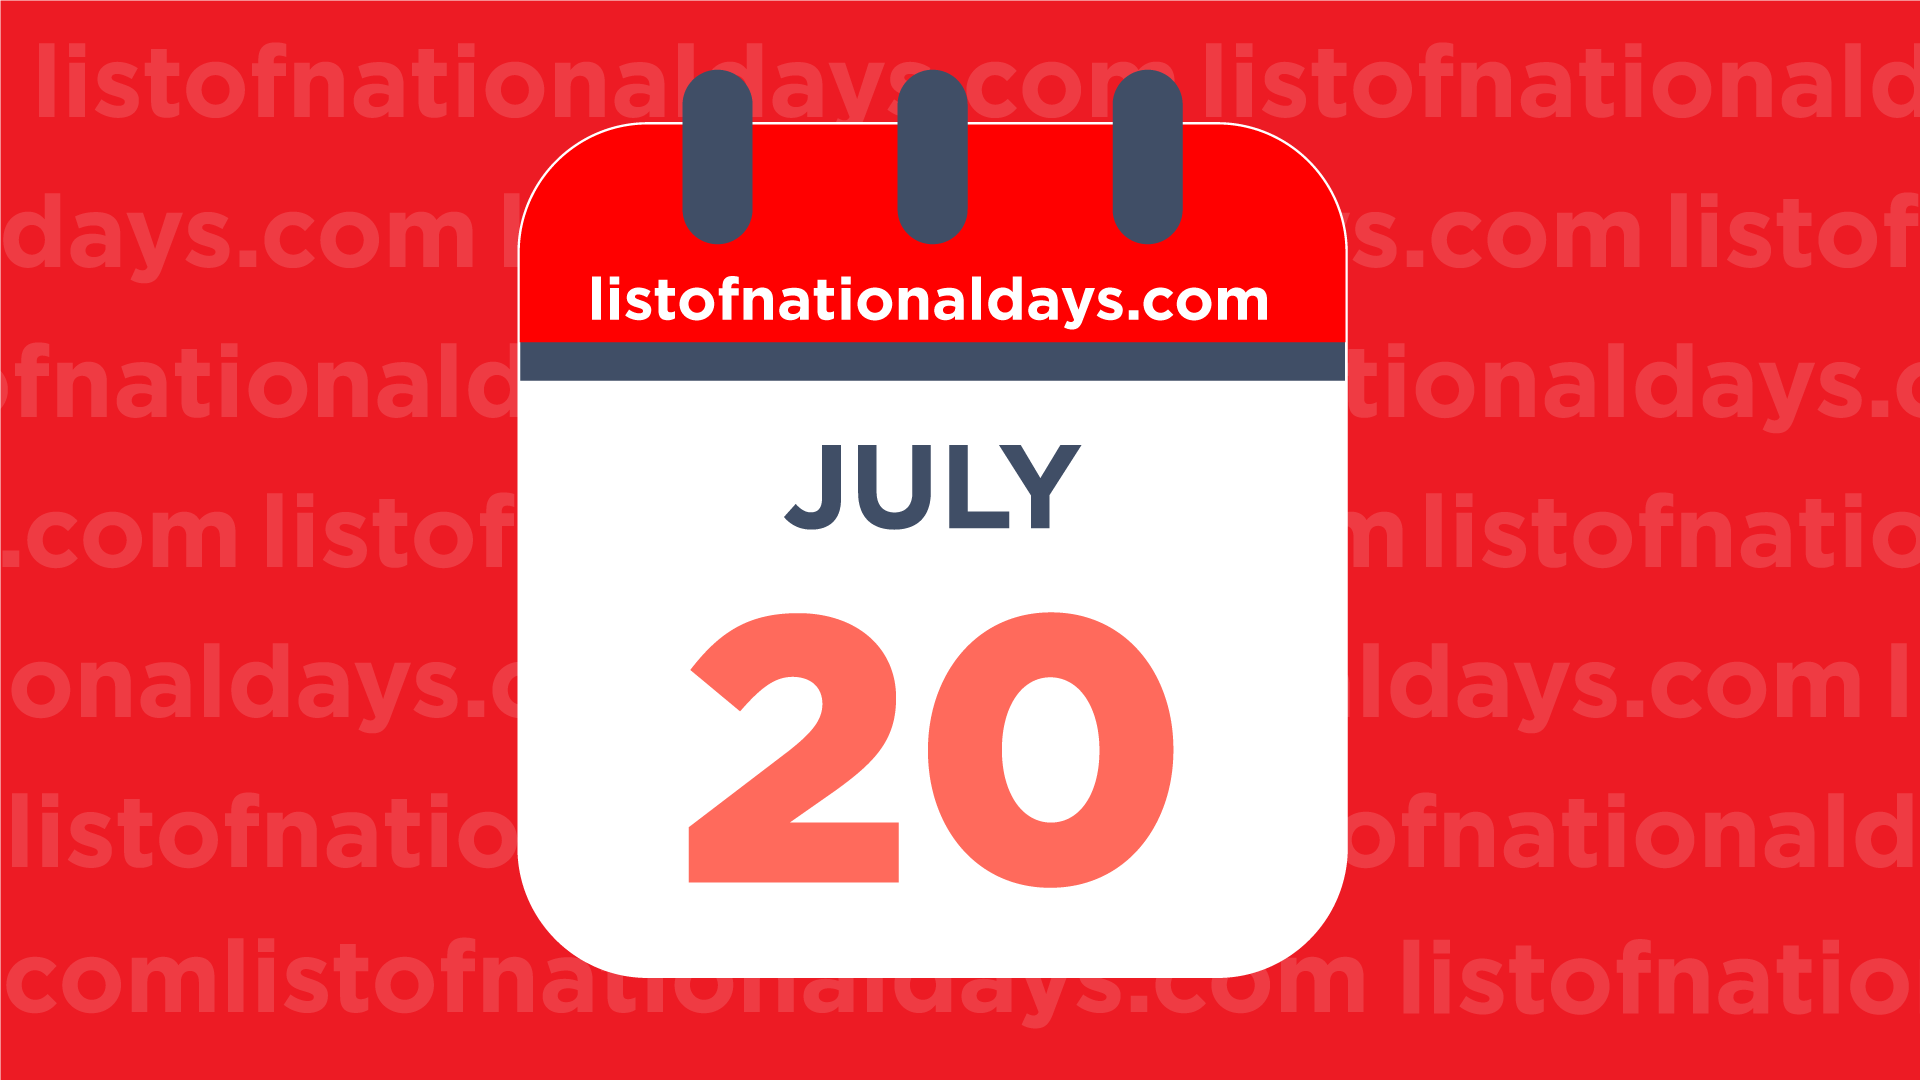 JULY 20TH: National Holidays,Observances & Famous Birthdays